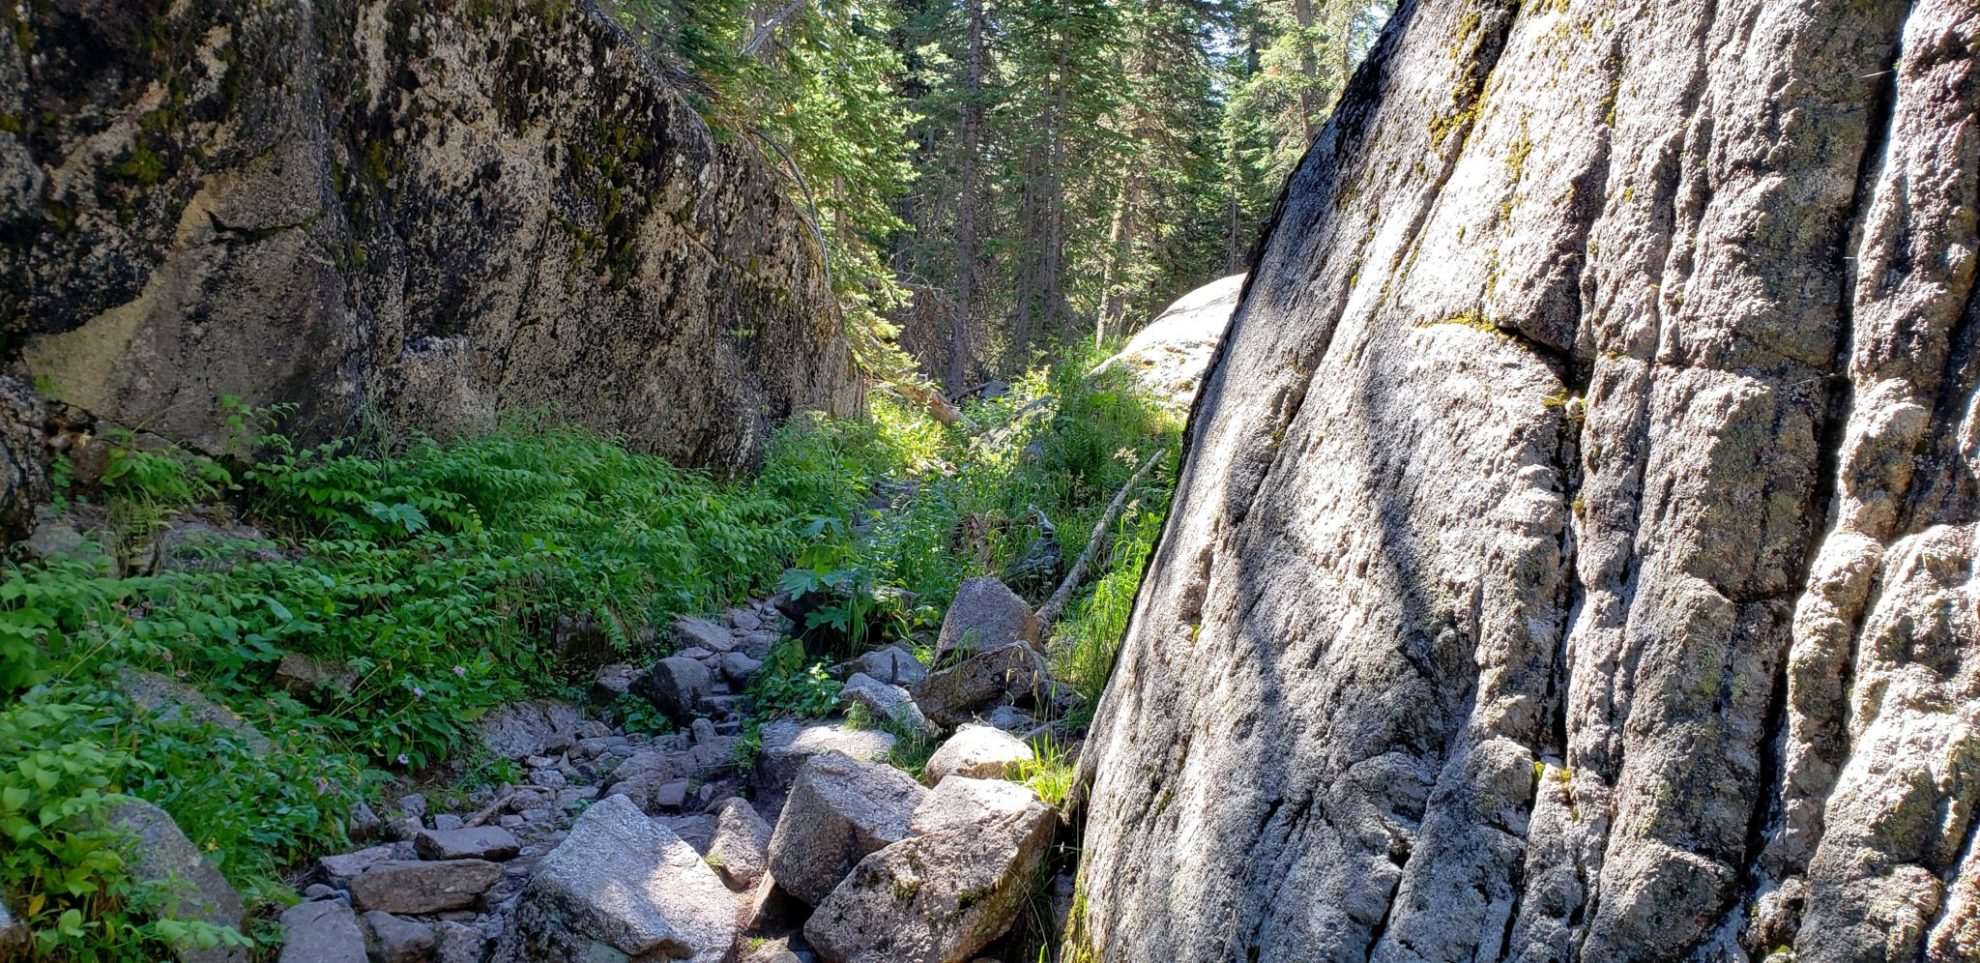 Narrow point in the Cascade trail